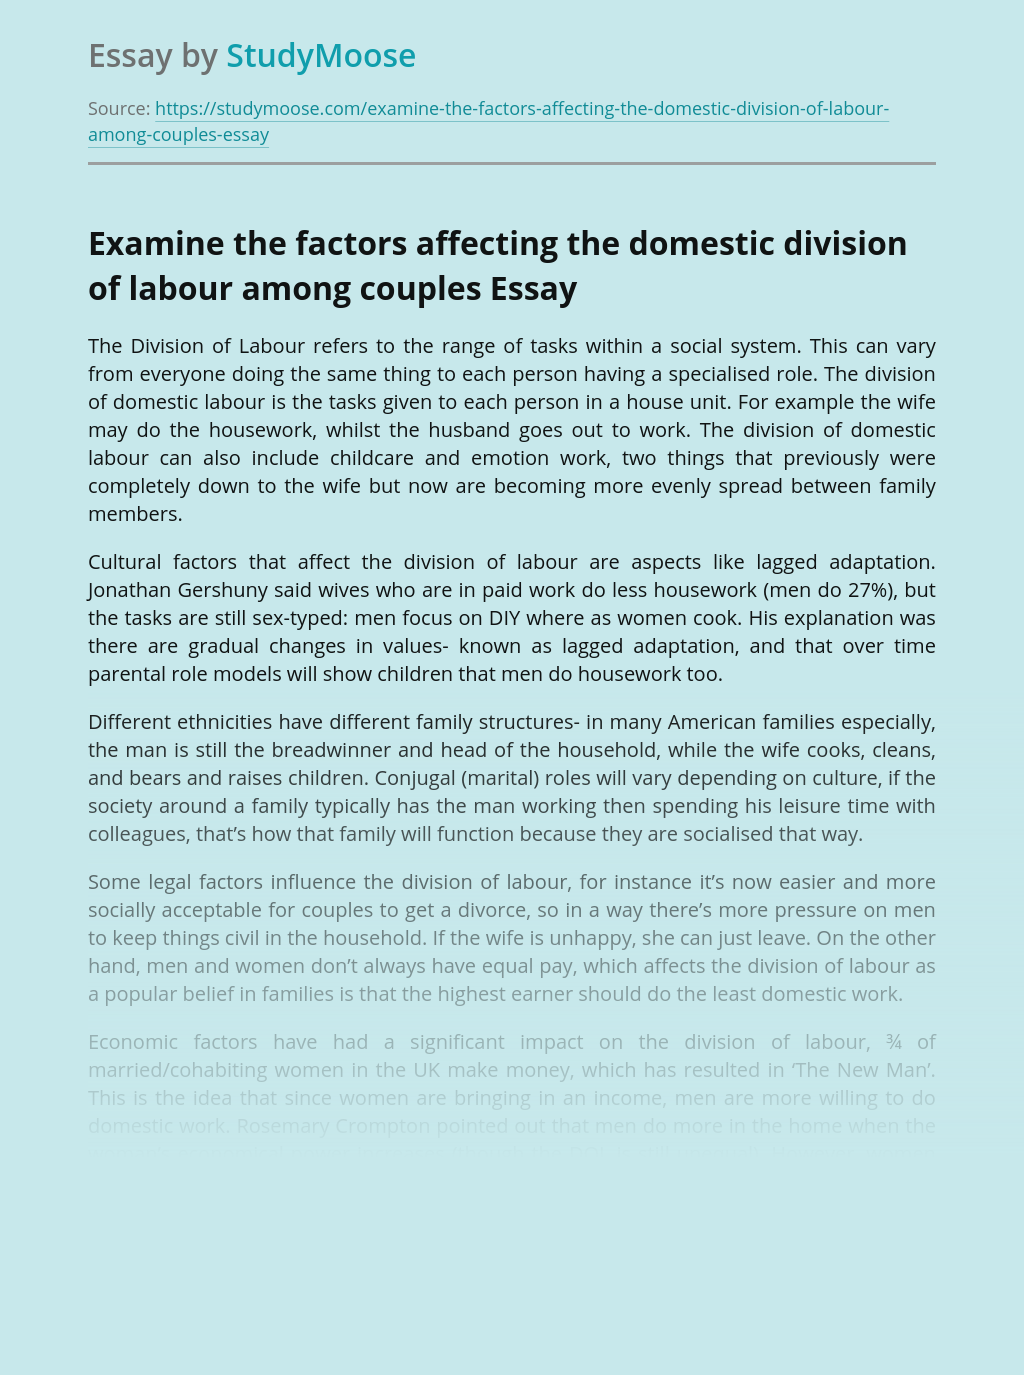 Examine the Factors Affecting the Domestic Division of Labour Among Couples